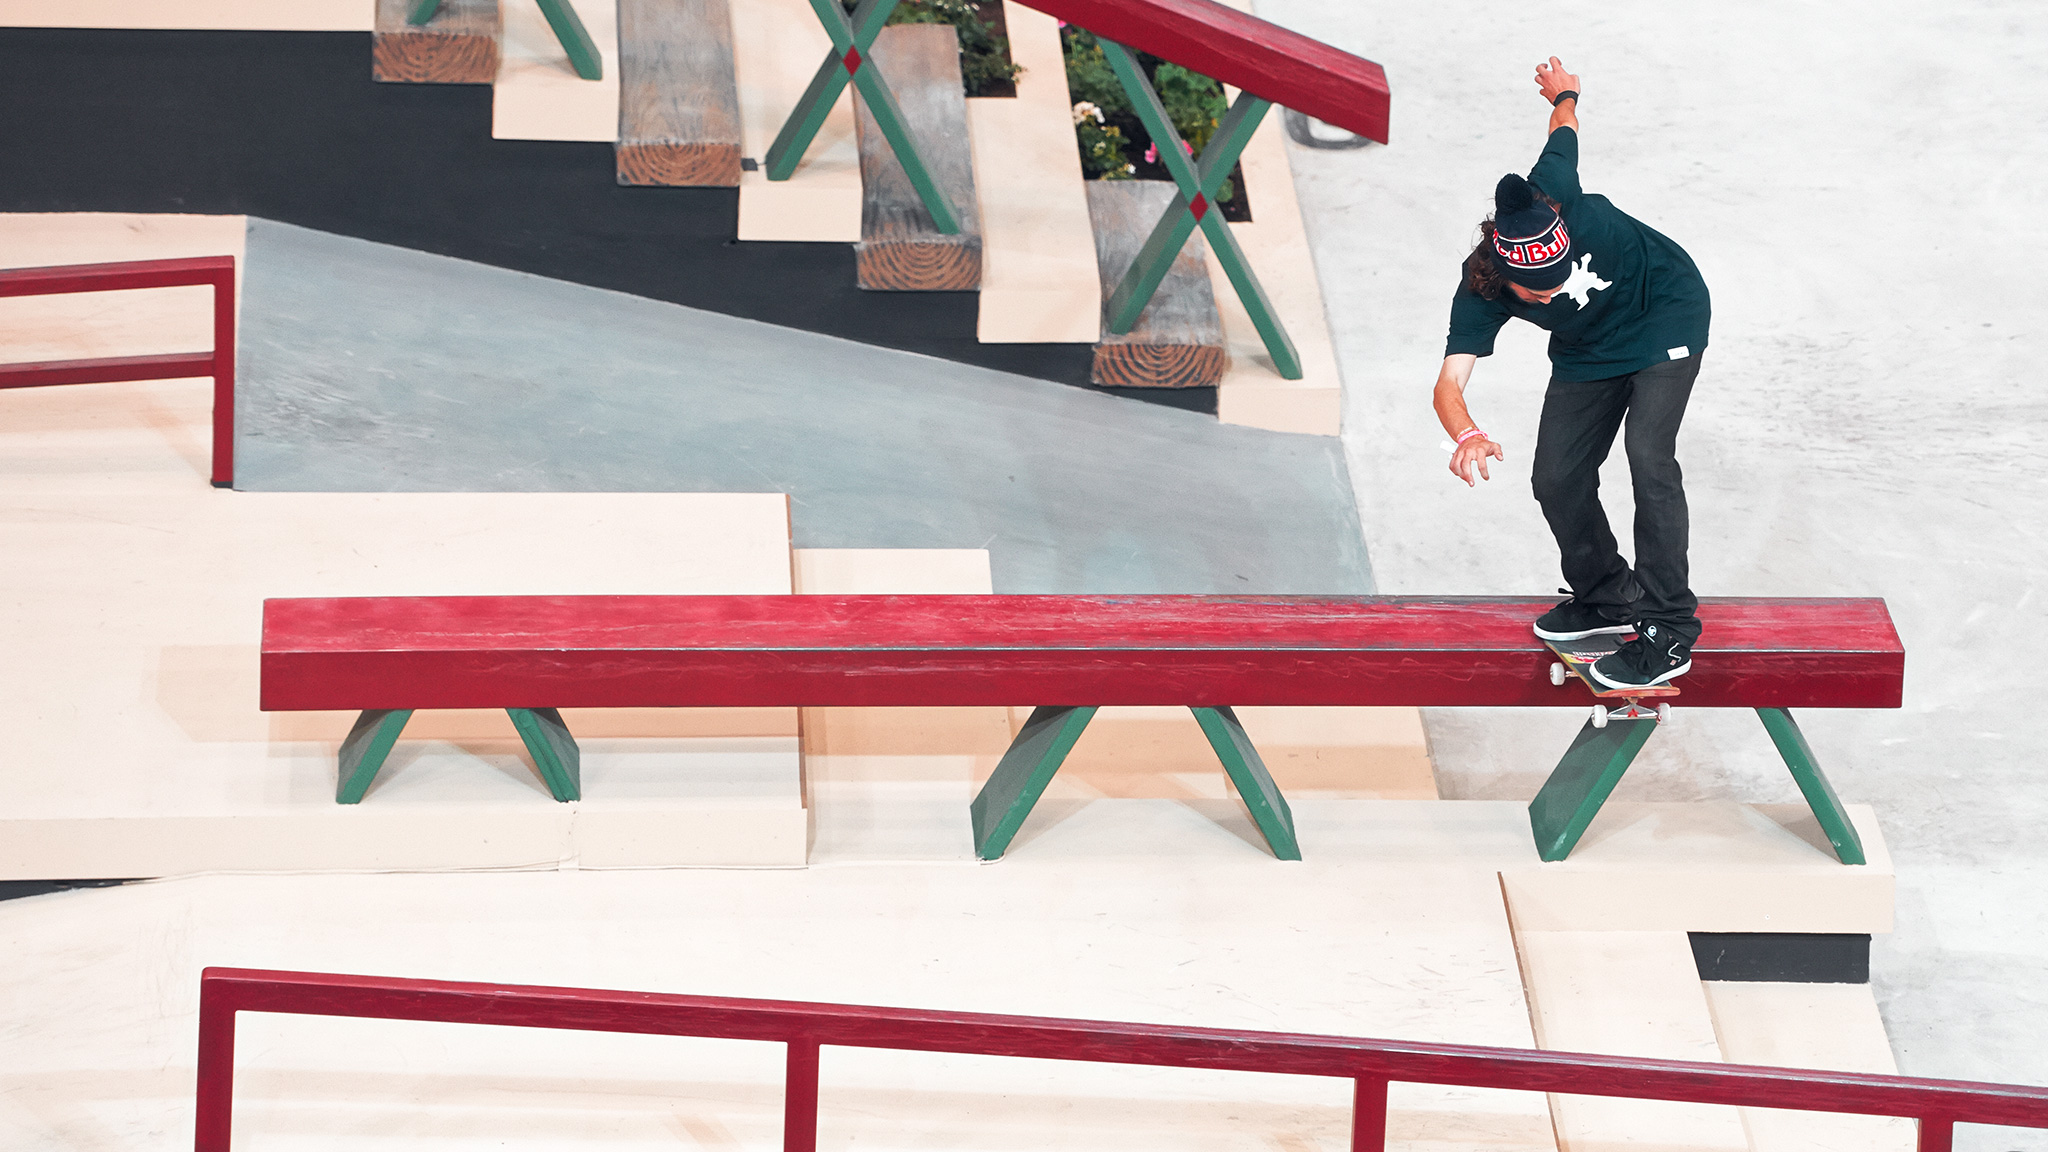 A Street League veteran and crowd favorite, Torey Pudwill advanced to the finals of Street League at X Games on Sunday with long backside tailslides and picture-perfect backside 360 ollies during the Impact section. Pudwill placed fifth in the finals.